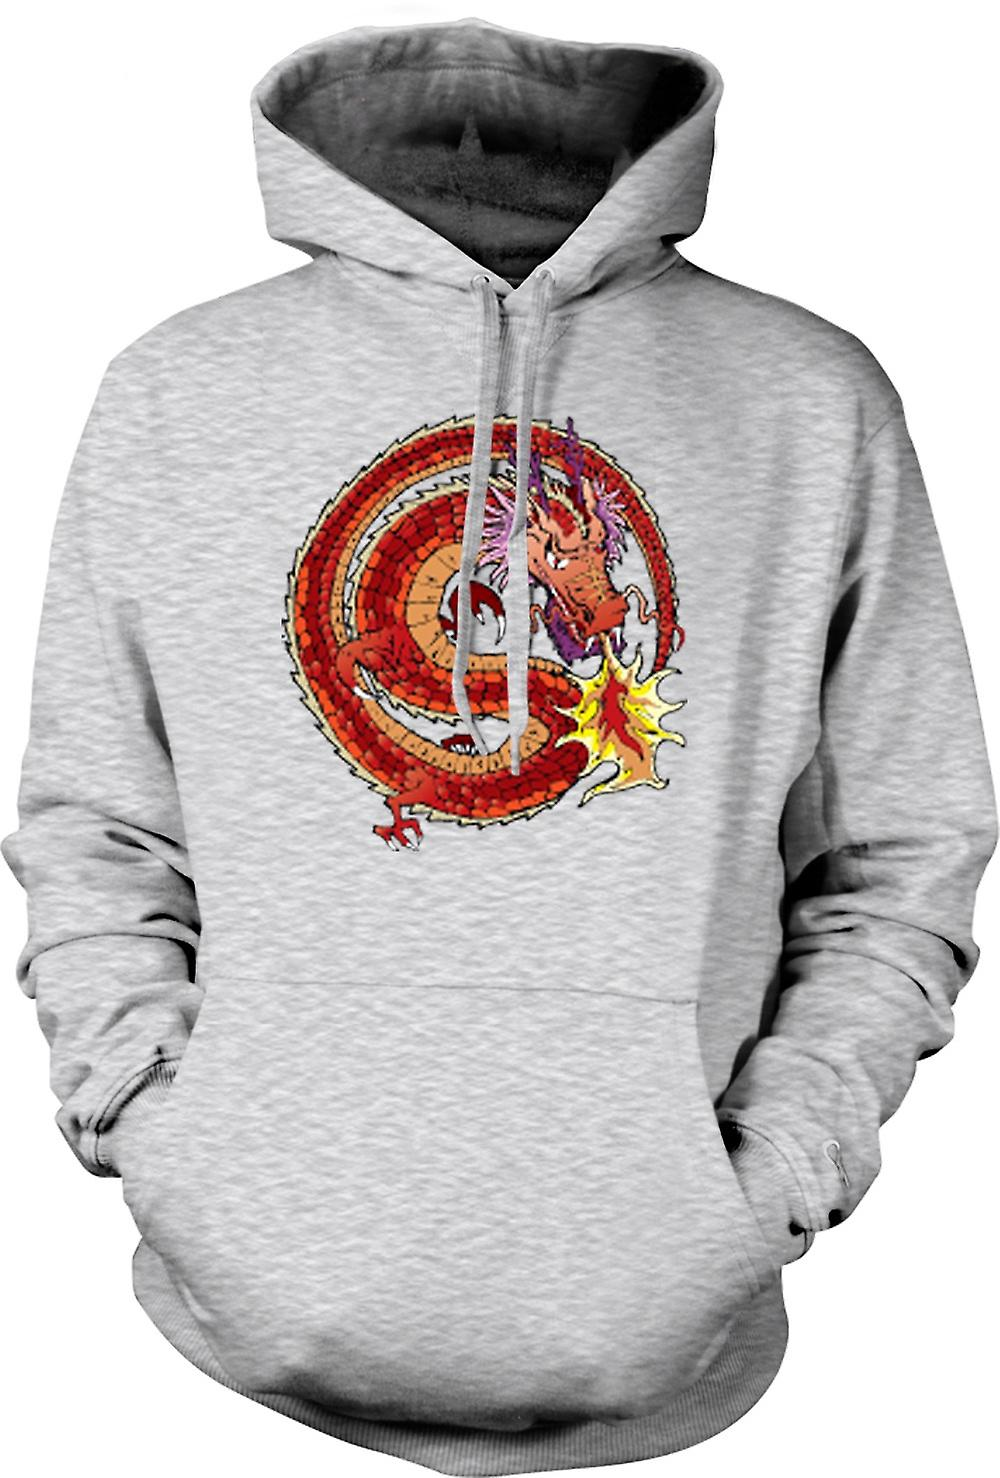 Mens Hoodie - Chinesischer Drache traditionelles Design